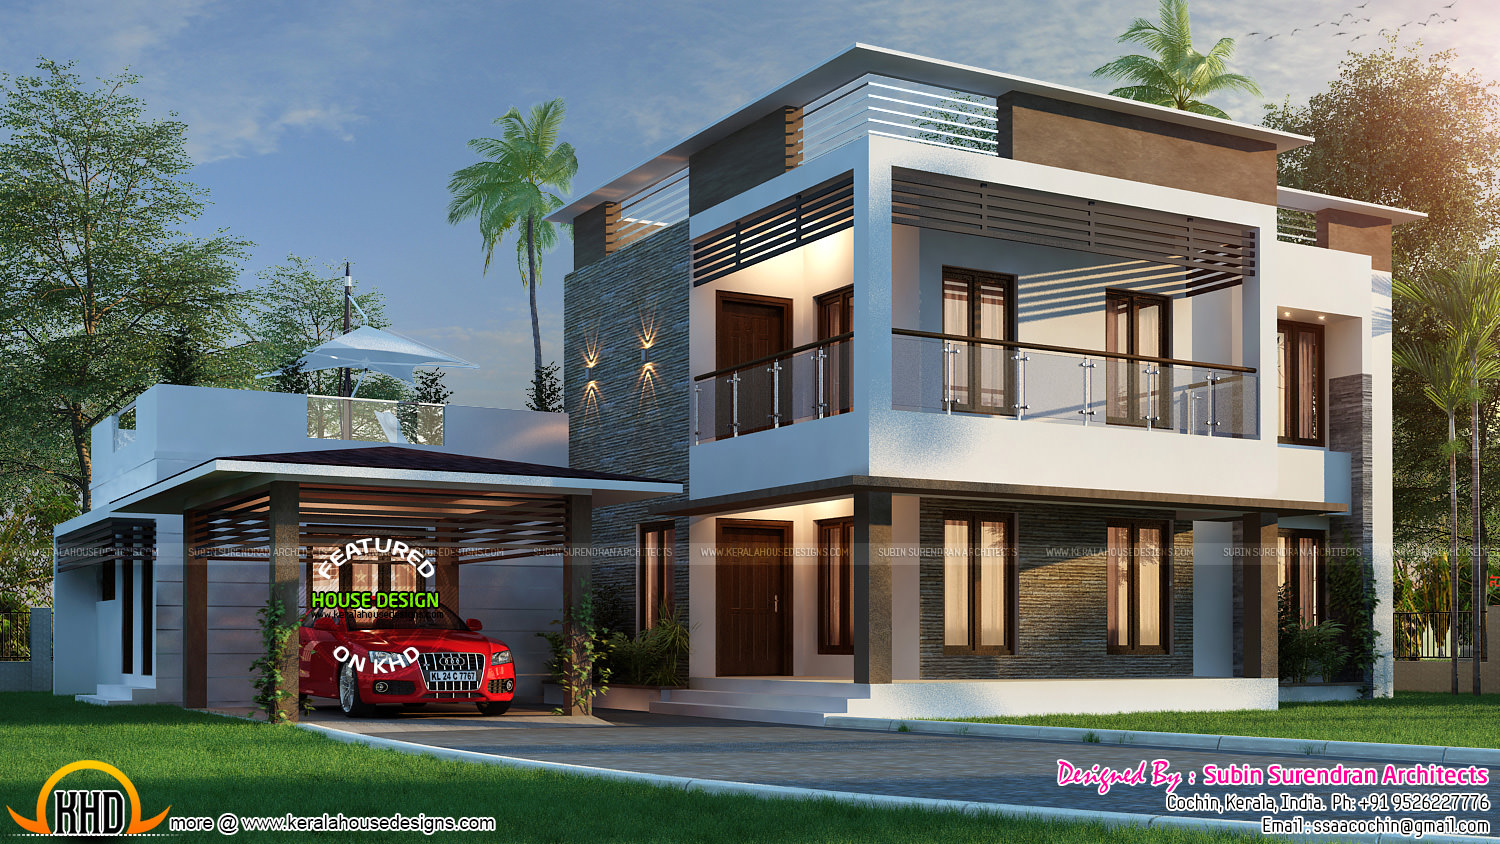 3116 Sq Ft Home With 4 BHK